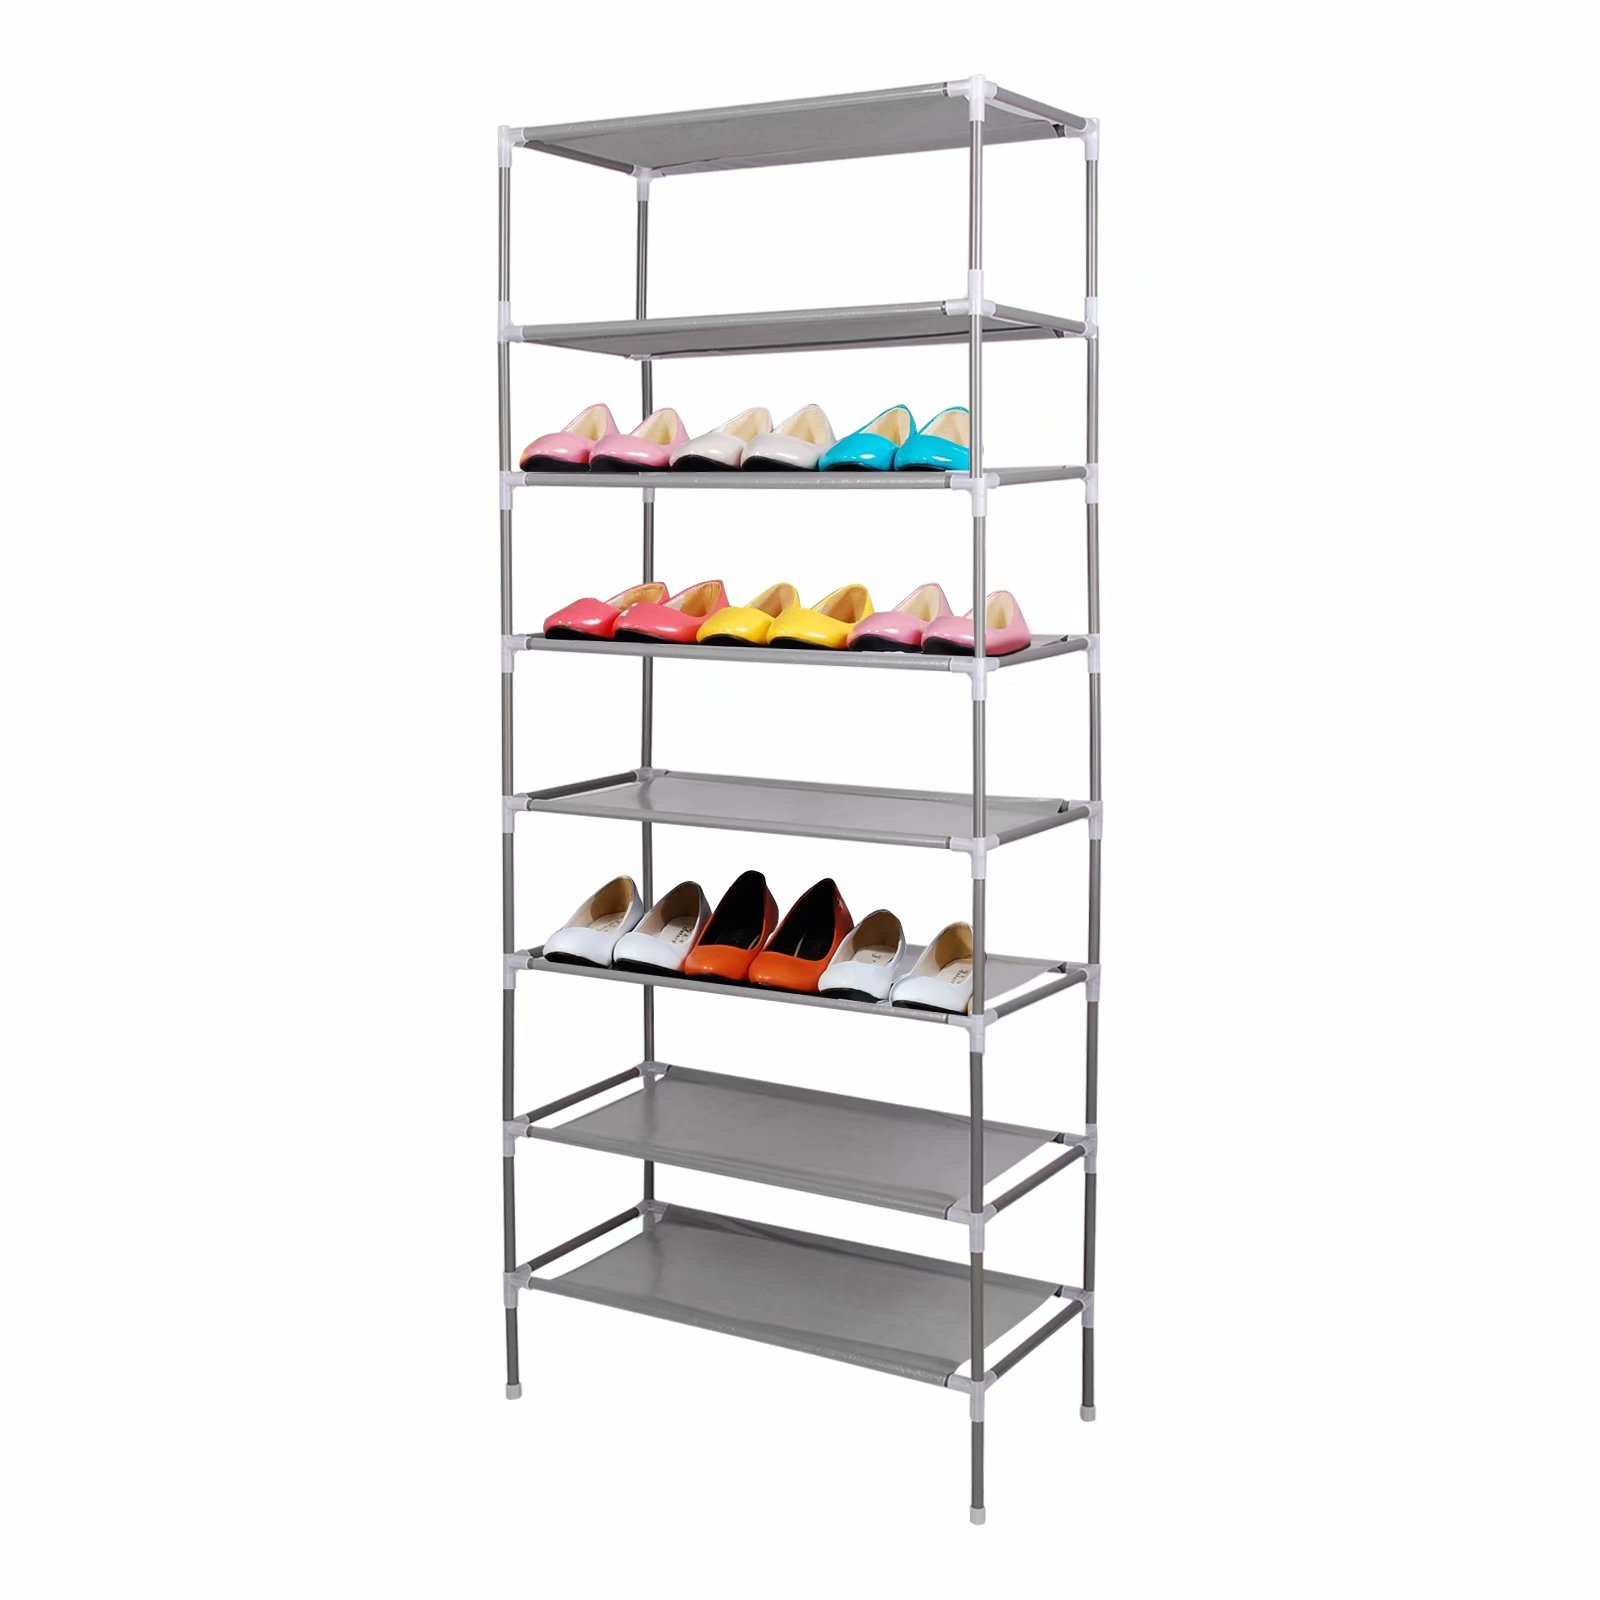 CellDeal 2/4/6/8/10 Tiers Non-Woven Fabric Dustproof Shoe Rack Storage Organizer Cover Cabinet Shelf Cabinet 6/12/18/24/30 Pairs 2